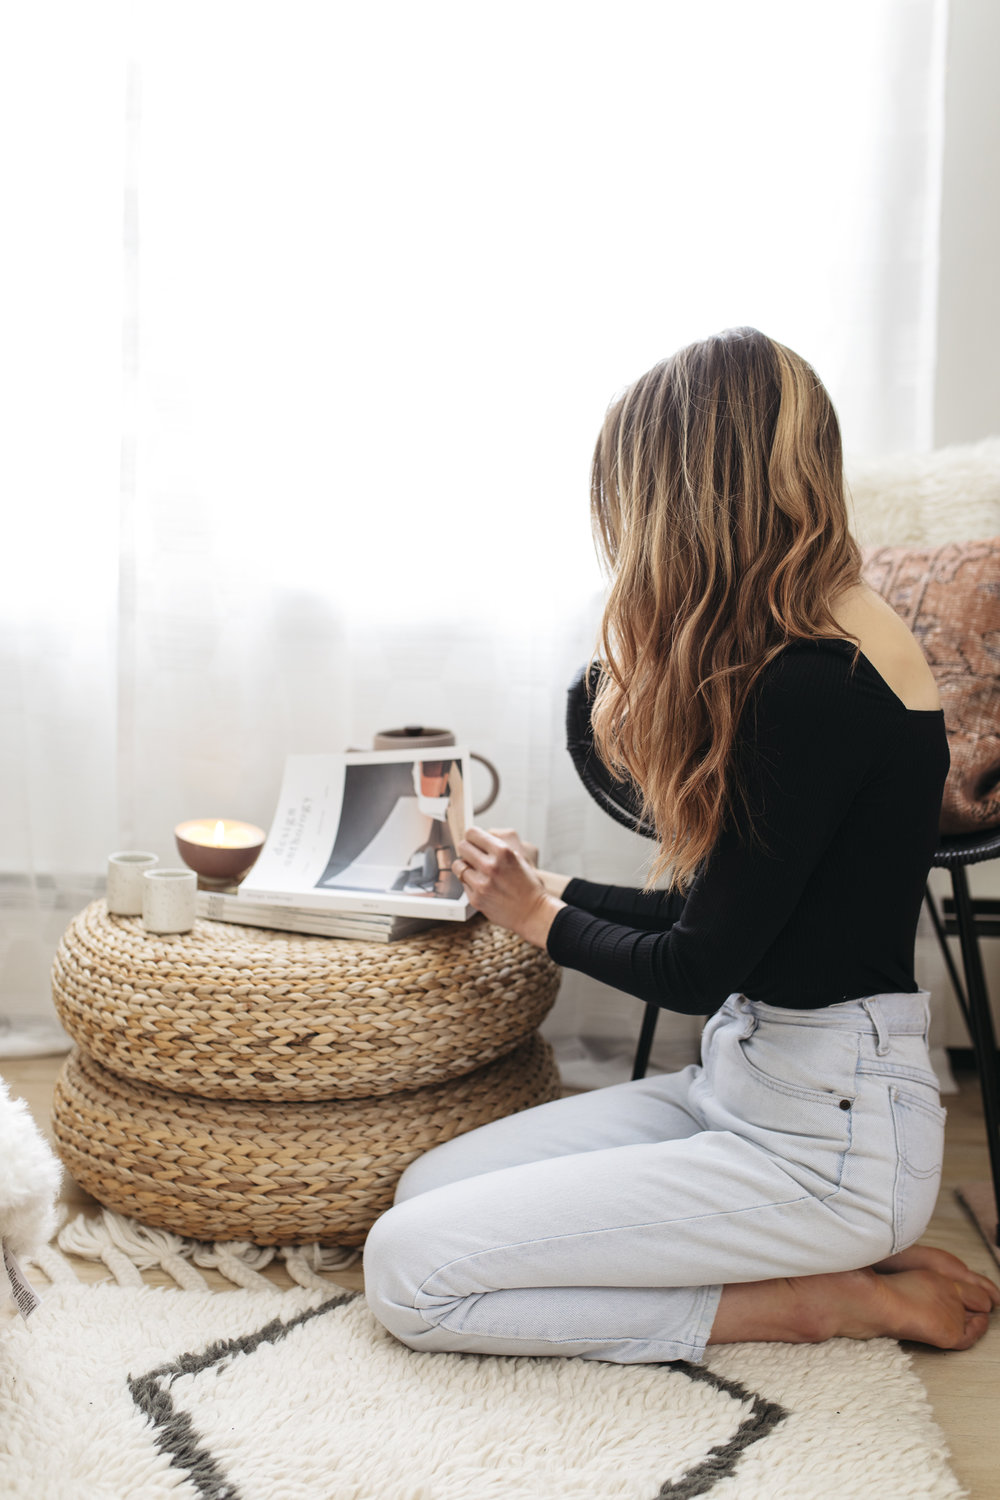 Magazines are a good way to fuel inspiration to hygge up your own bedroom and make it your own